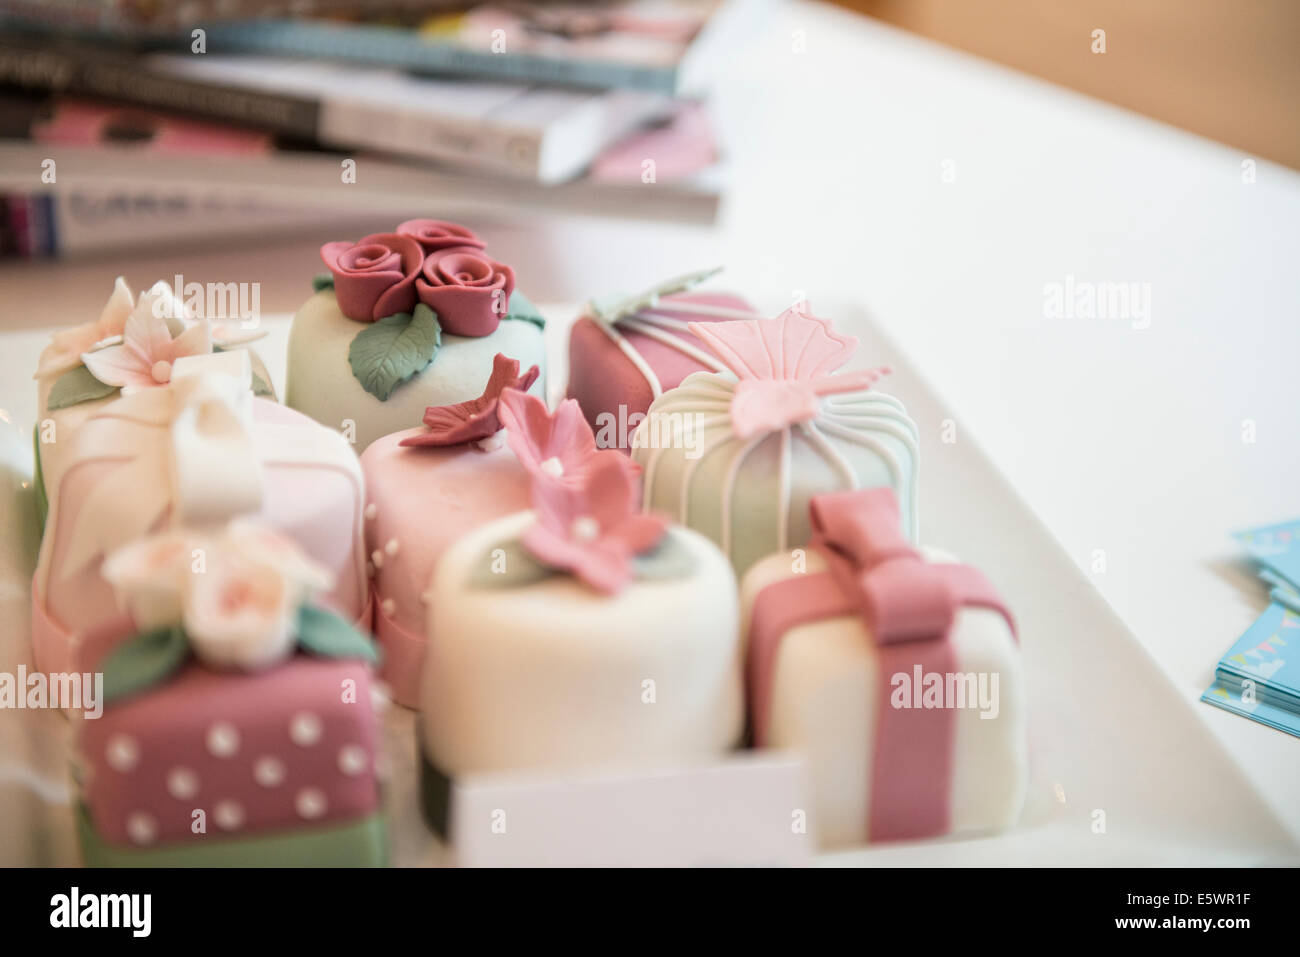 Close up of variety of individual decorated cakes in bakery - Stock Image